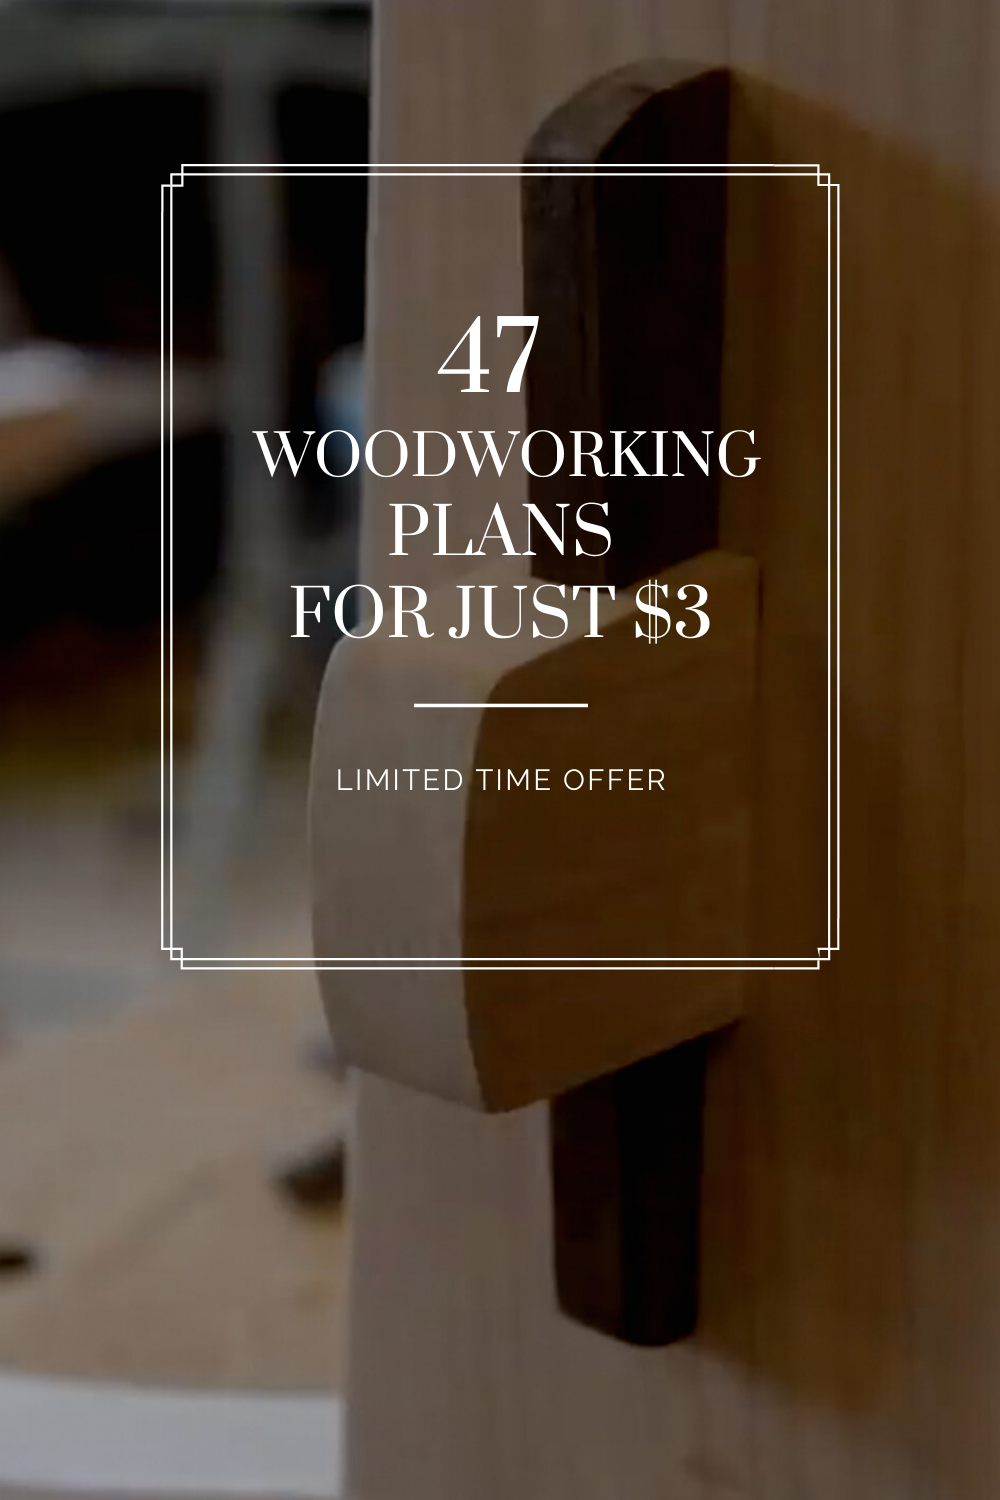 47 Woodworking Plans In 2020 Woodworking Plans Woodworking How To Plan